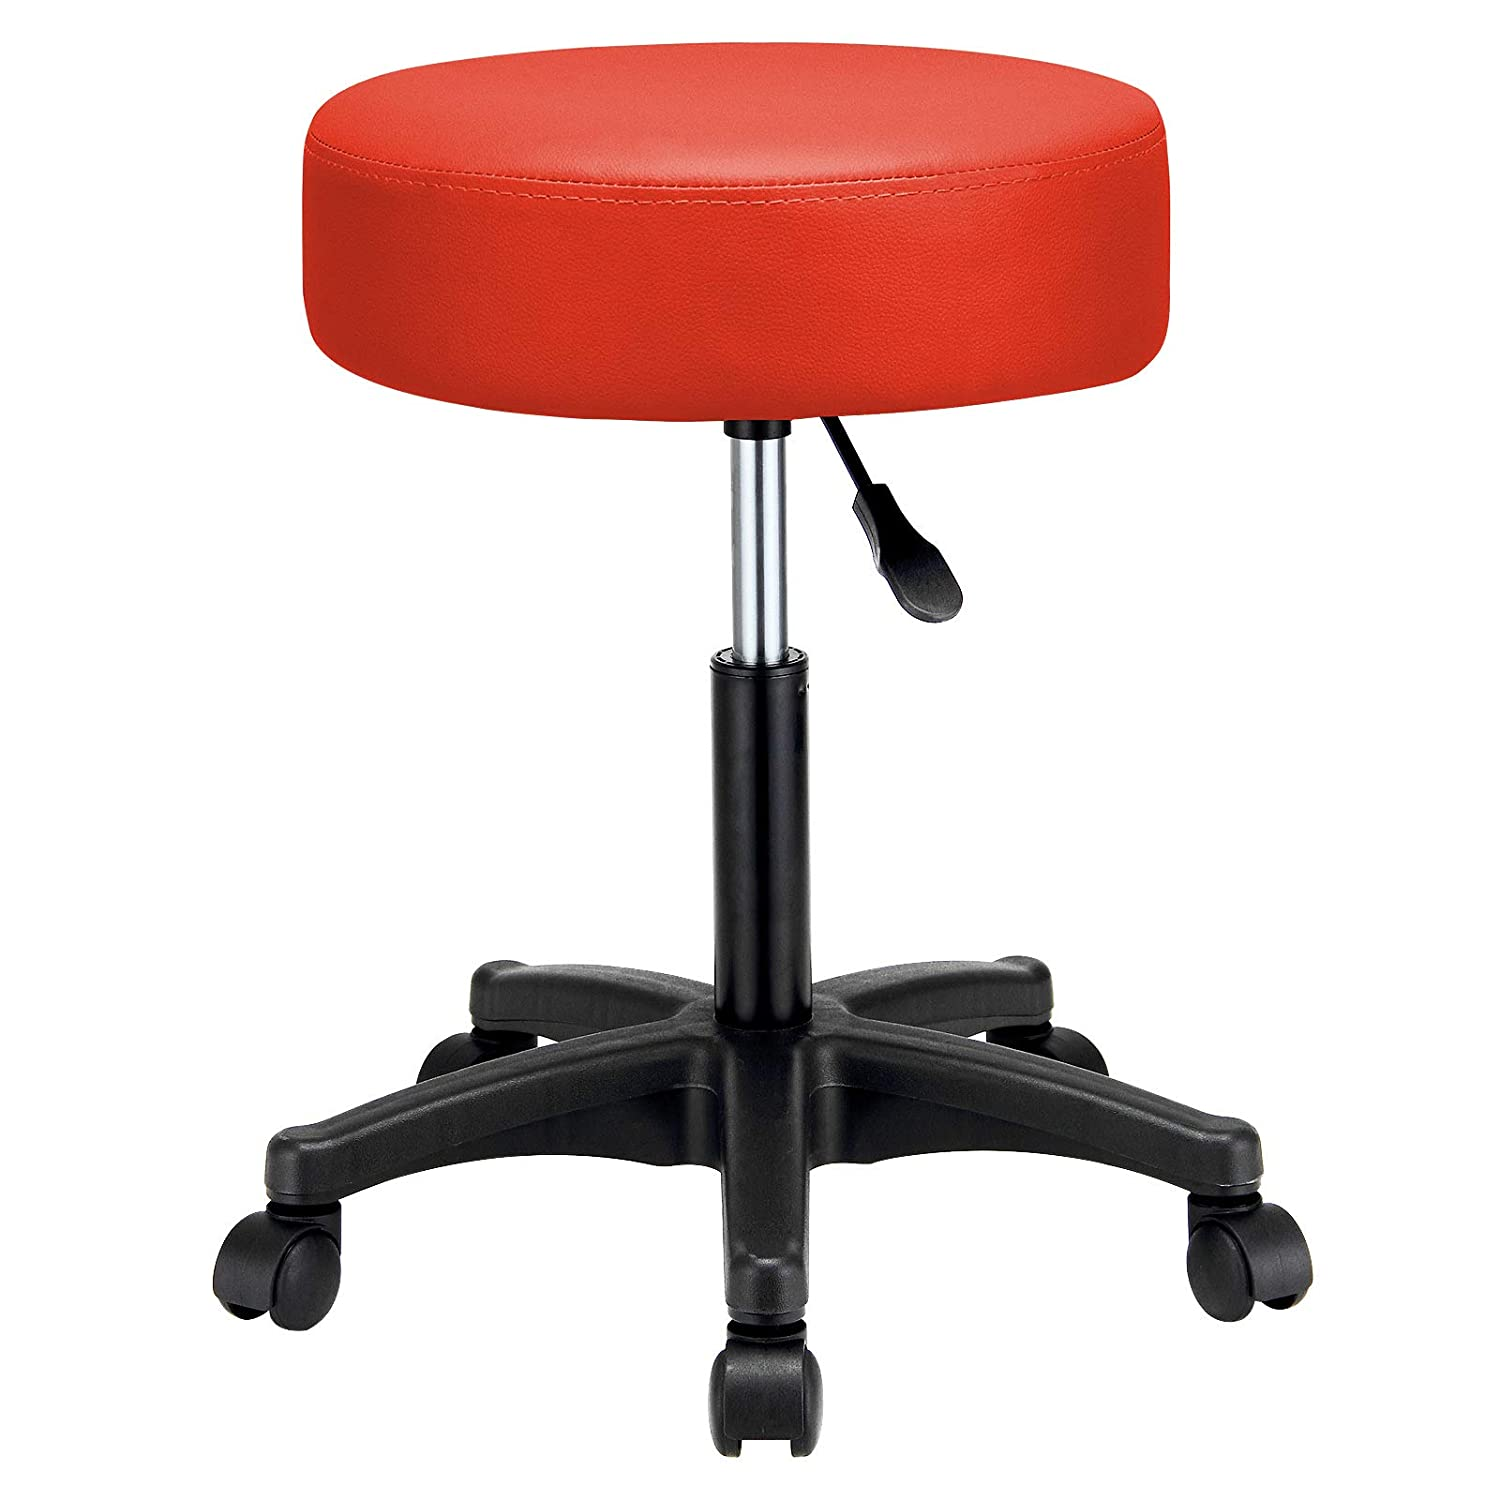 Deuba® Swivel Chair, Work Stool, Beauty Roller Stool, Extra Thick 10cm Padding Height Adjustable 5 Castors PU Leather Chrome - Colour Choice